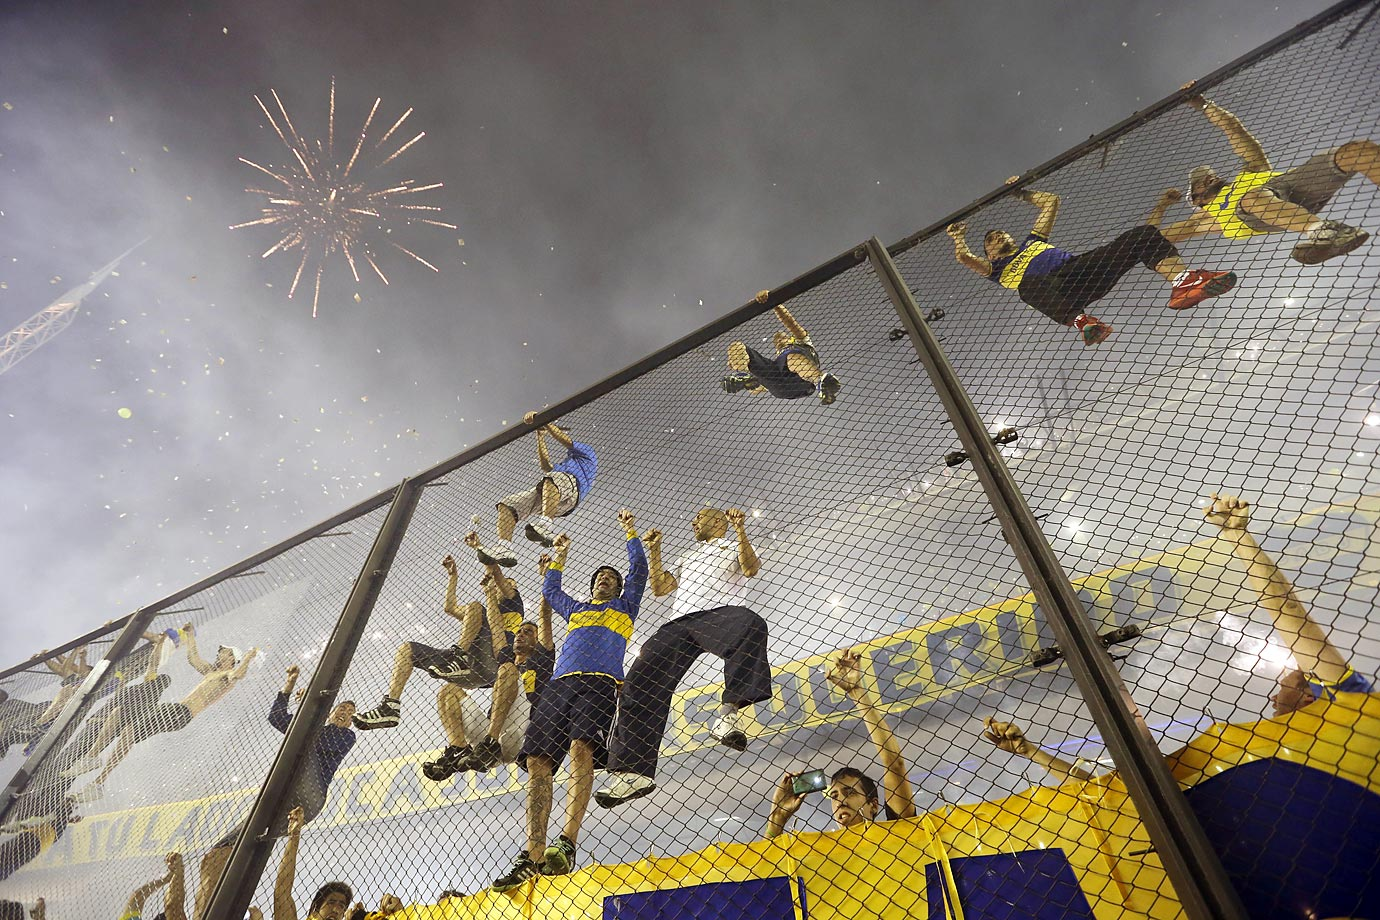 Boca Juniors' fans cheer as fireworks explode before the start of the first leg of the Copa Sudamericana semifinal soccer match against River Plate.